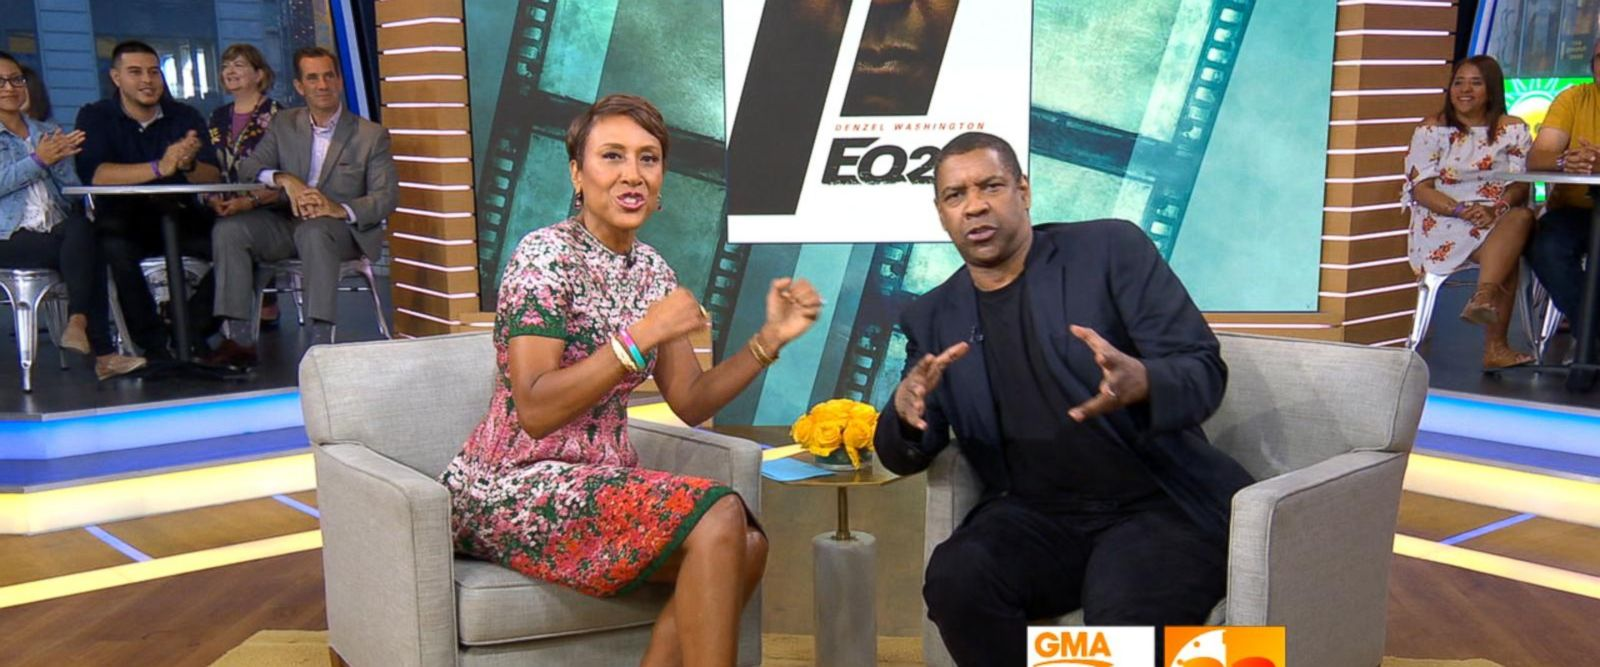 VIDEO: 'GMA' Hot List: Denzel Washington breaks out into song with Robin Roberts